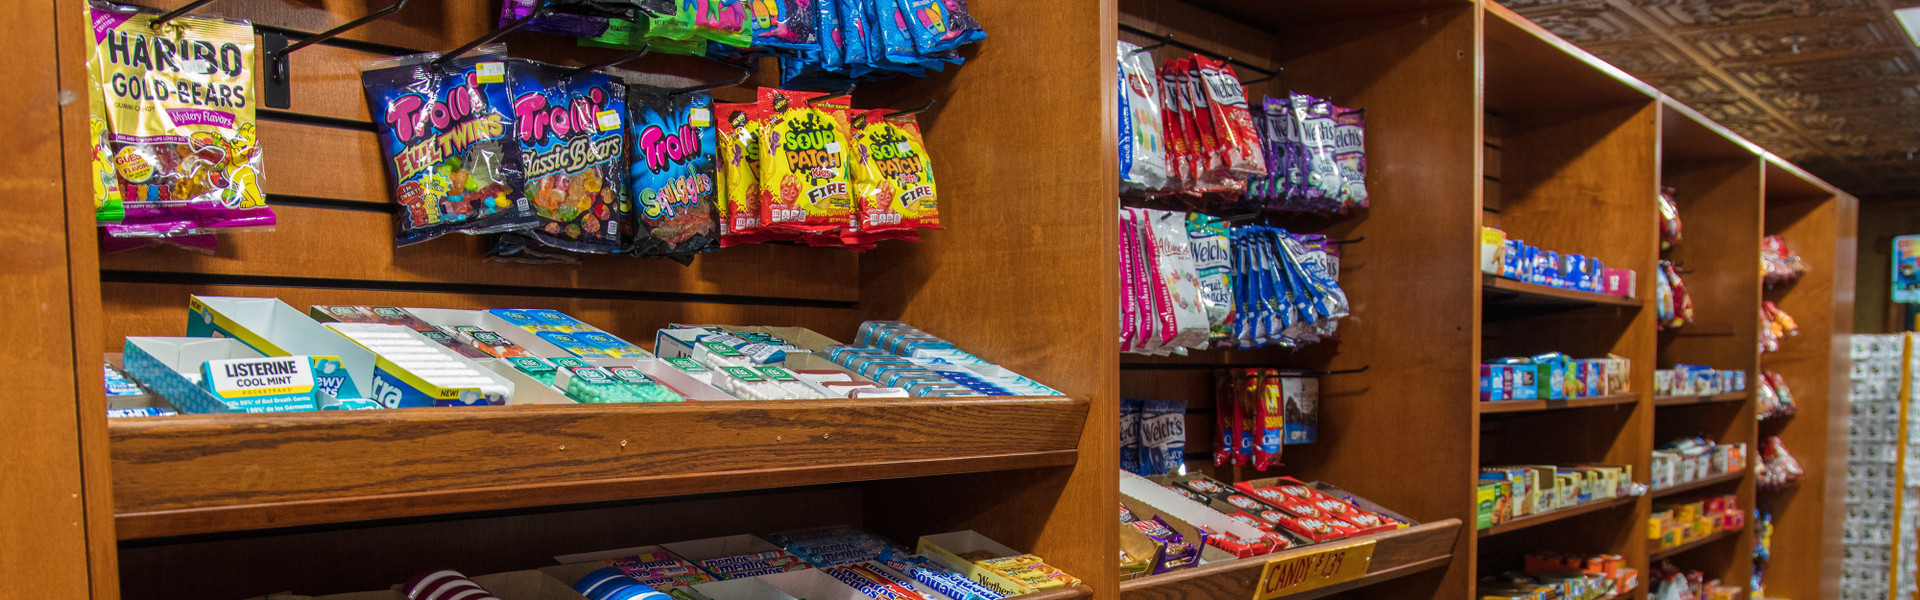 Marketplace at Our Gatlinburg Resort near the Smoky Mountains | Grocery Shelves